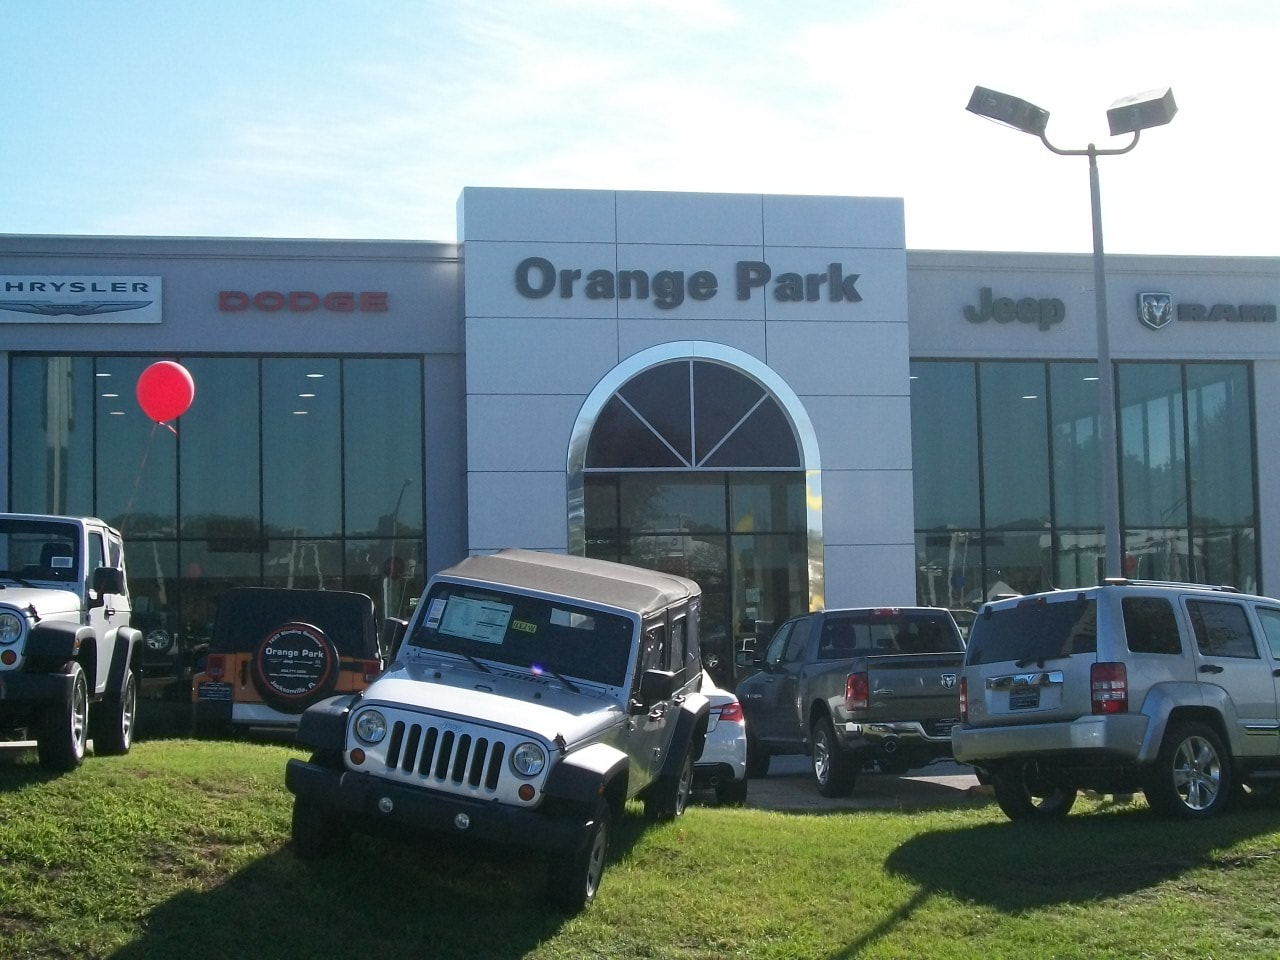 Orange Park Chrysler Dodge Jeep Ram in Jacksonville